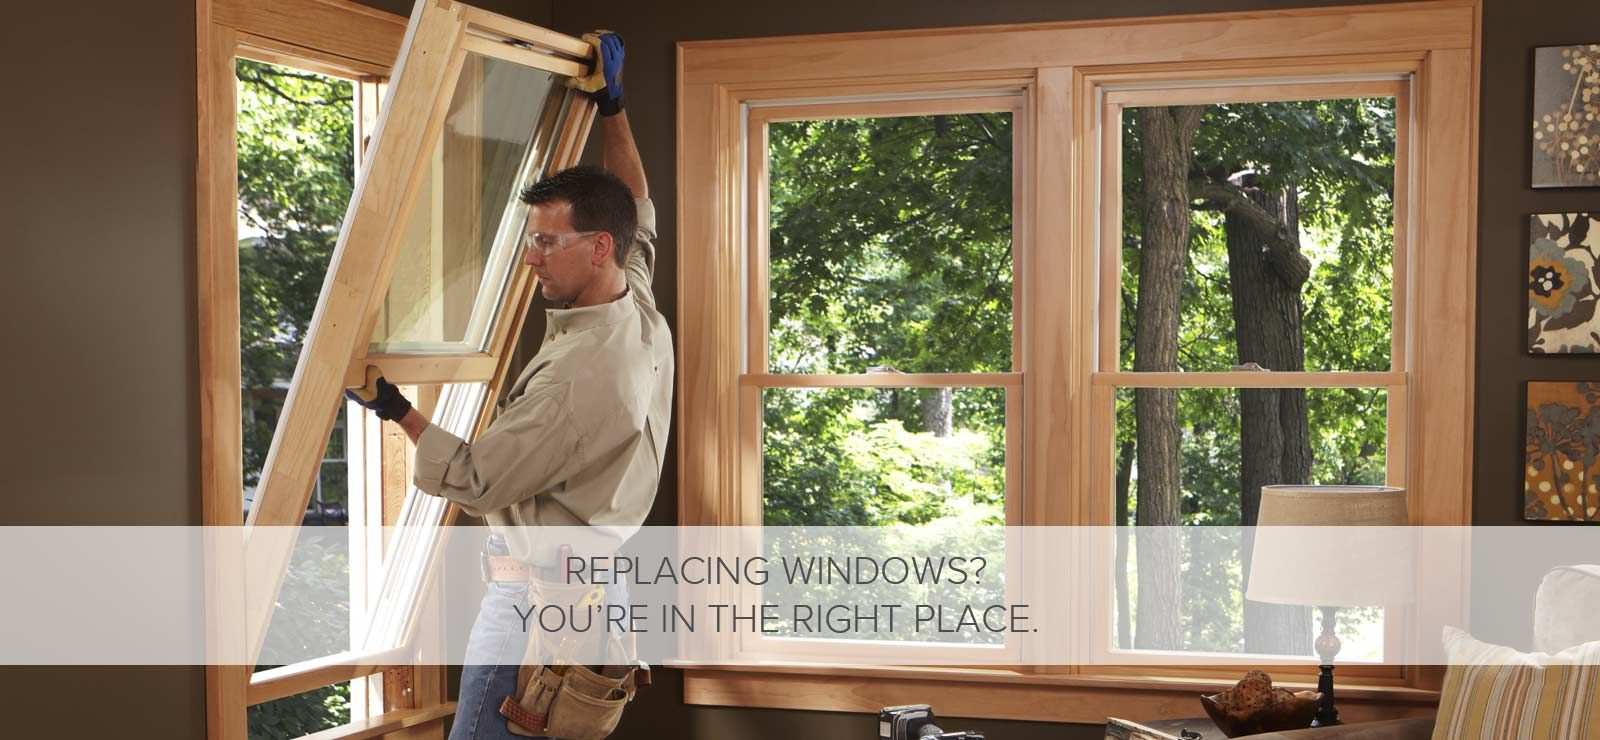 We proudly carry Andersen windows and doors products